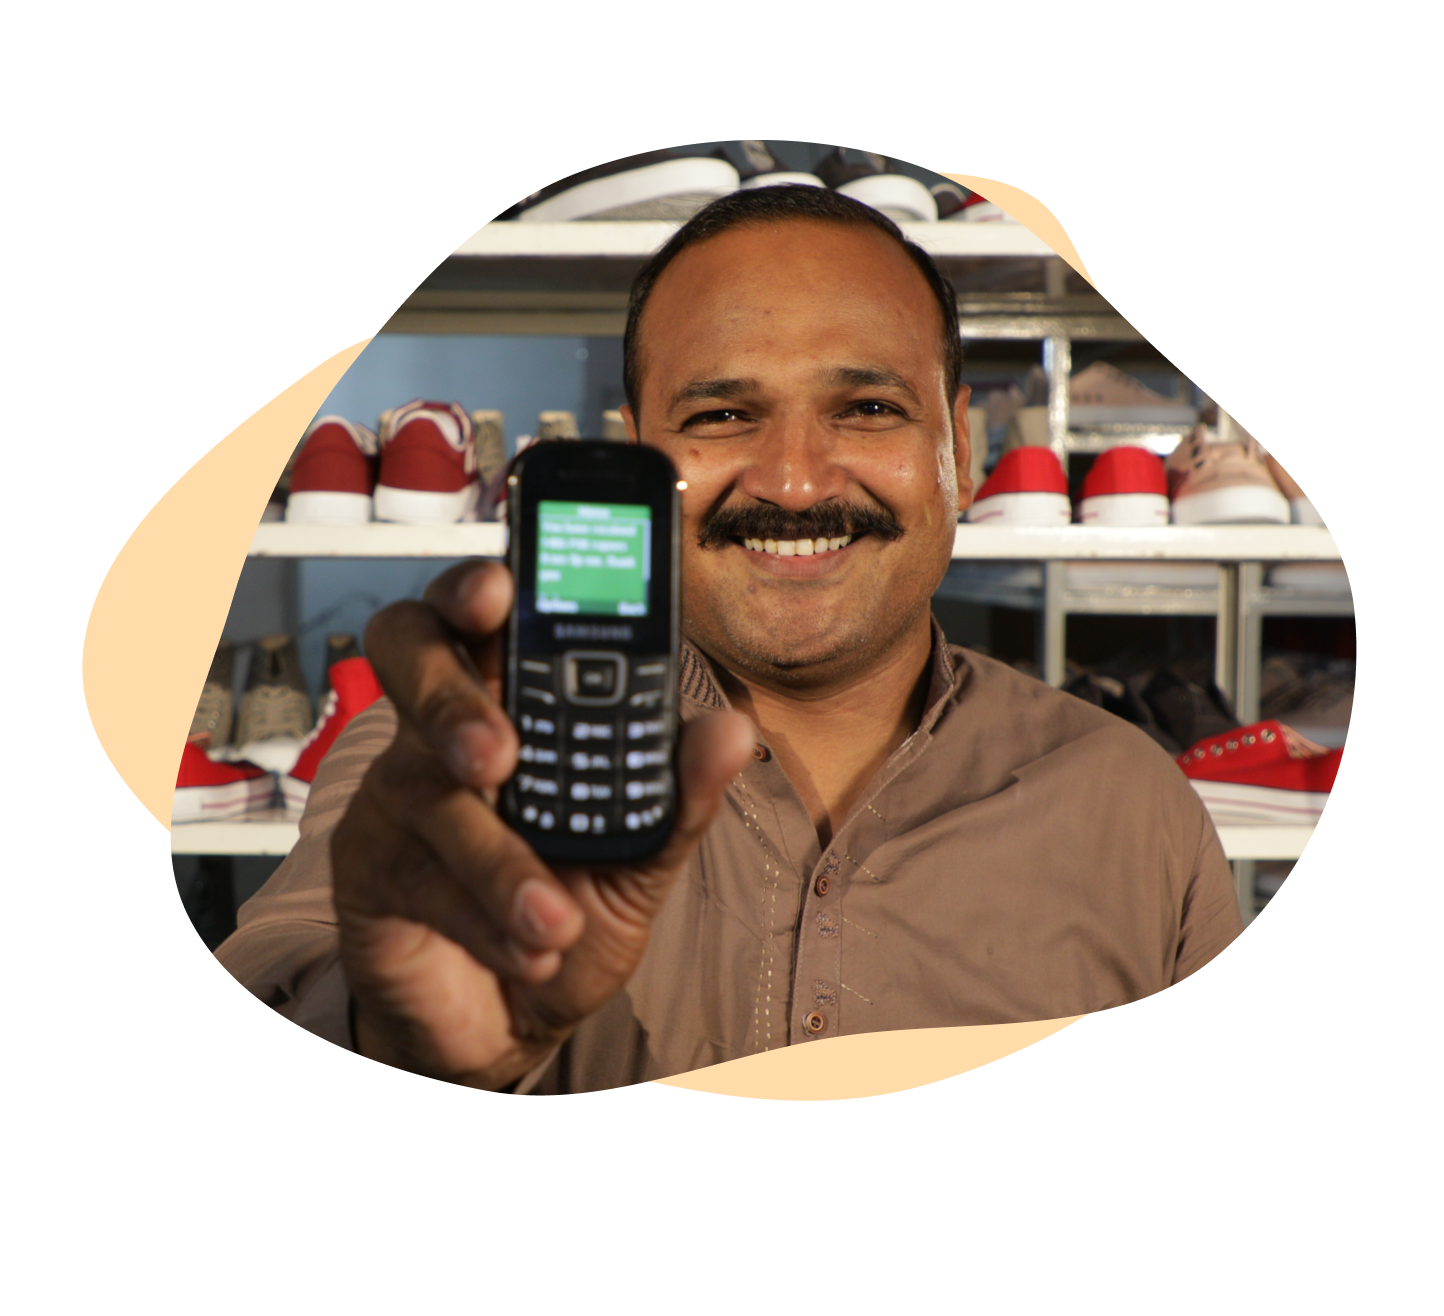 A lucky worker, showing his mobile